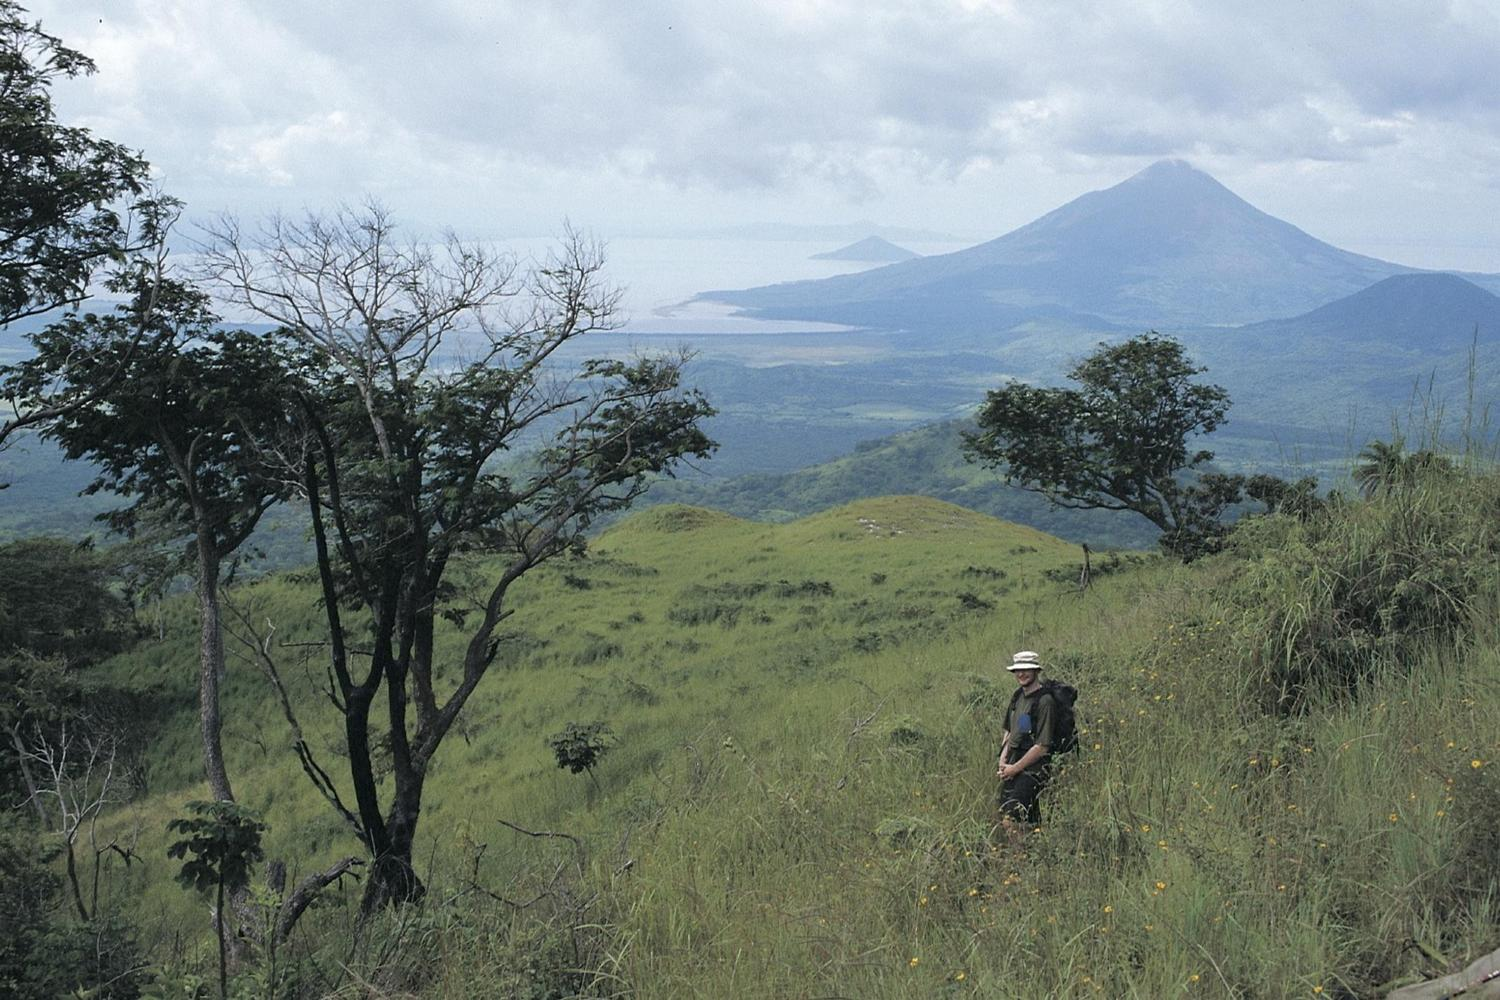 Hiking in the volcanoes of Nicaragua